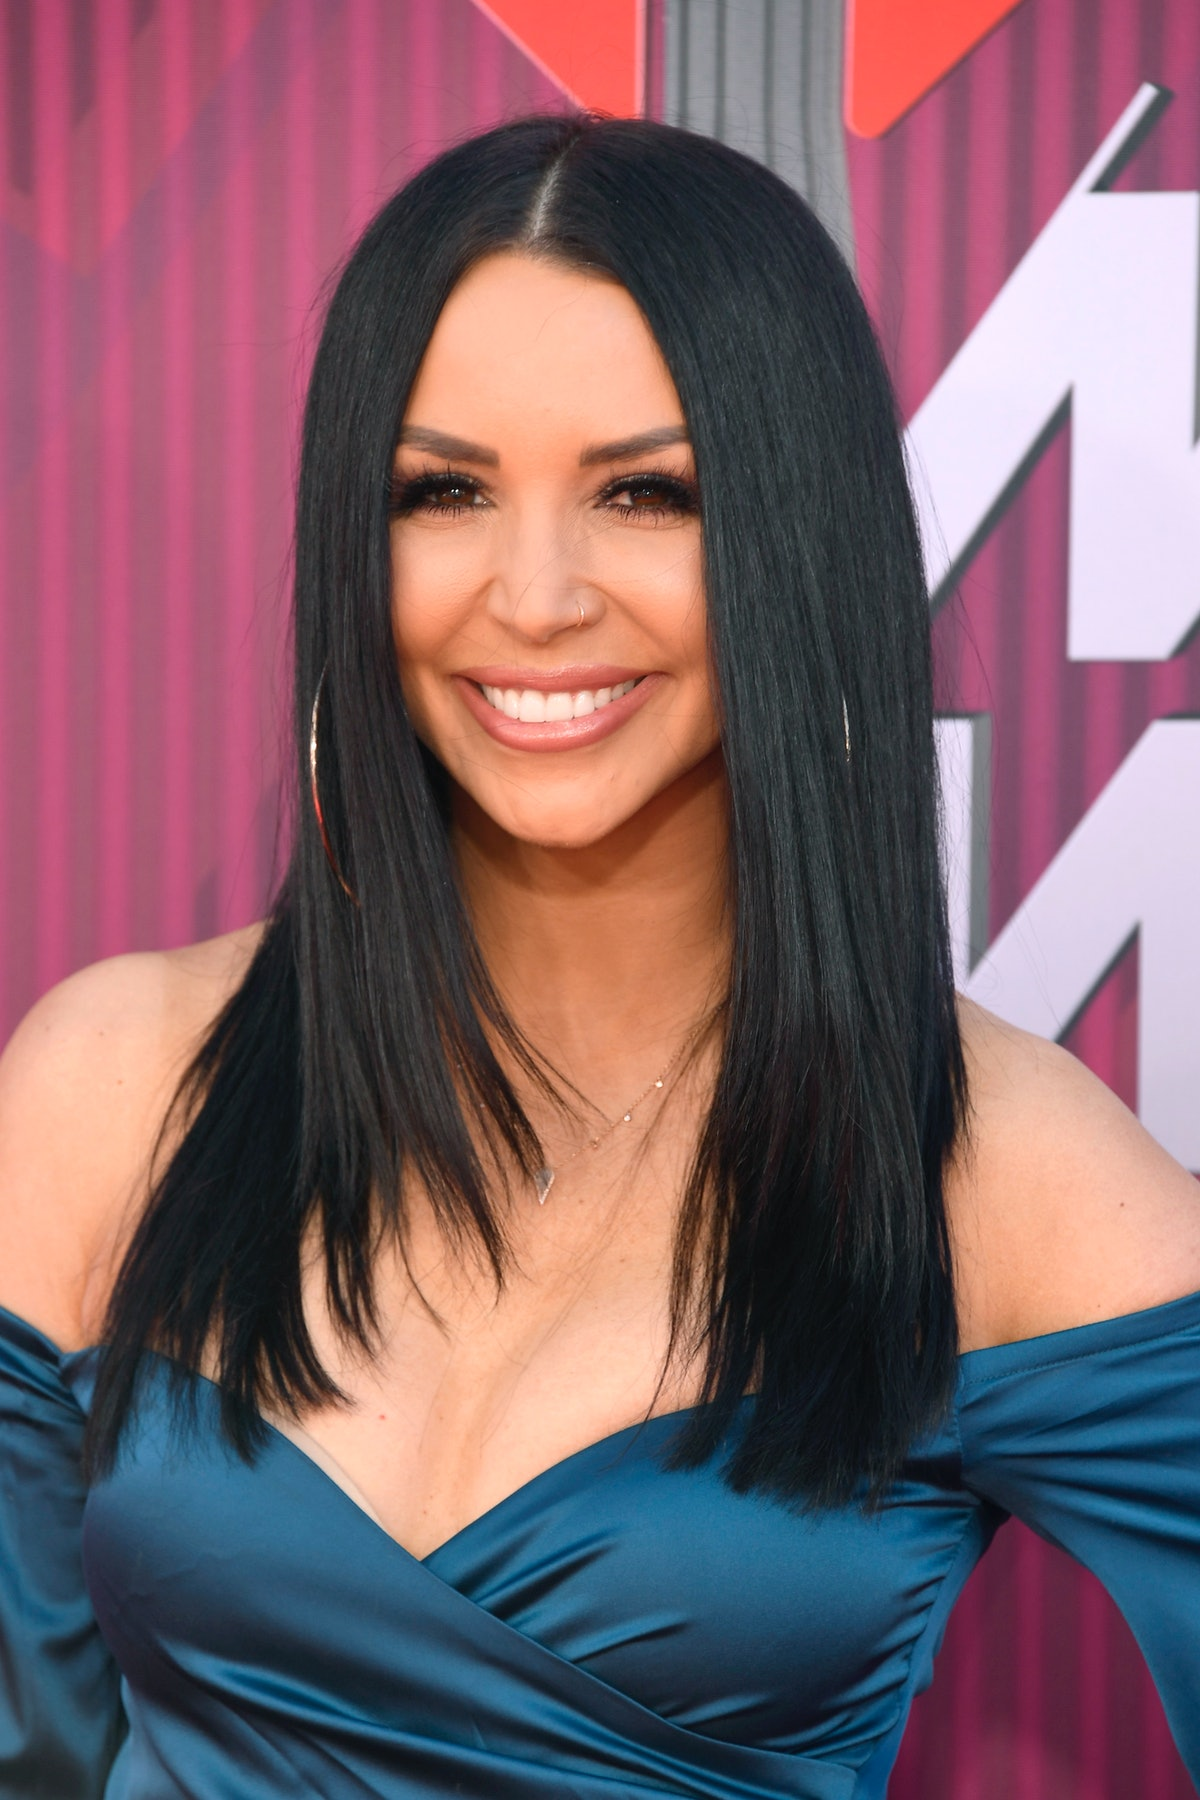 Scheana From 'Vanderpump Rules' Explained The Rumor About Jordyn Woods Applying At SUR